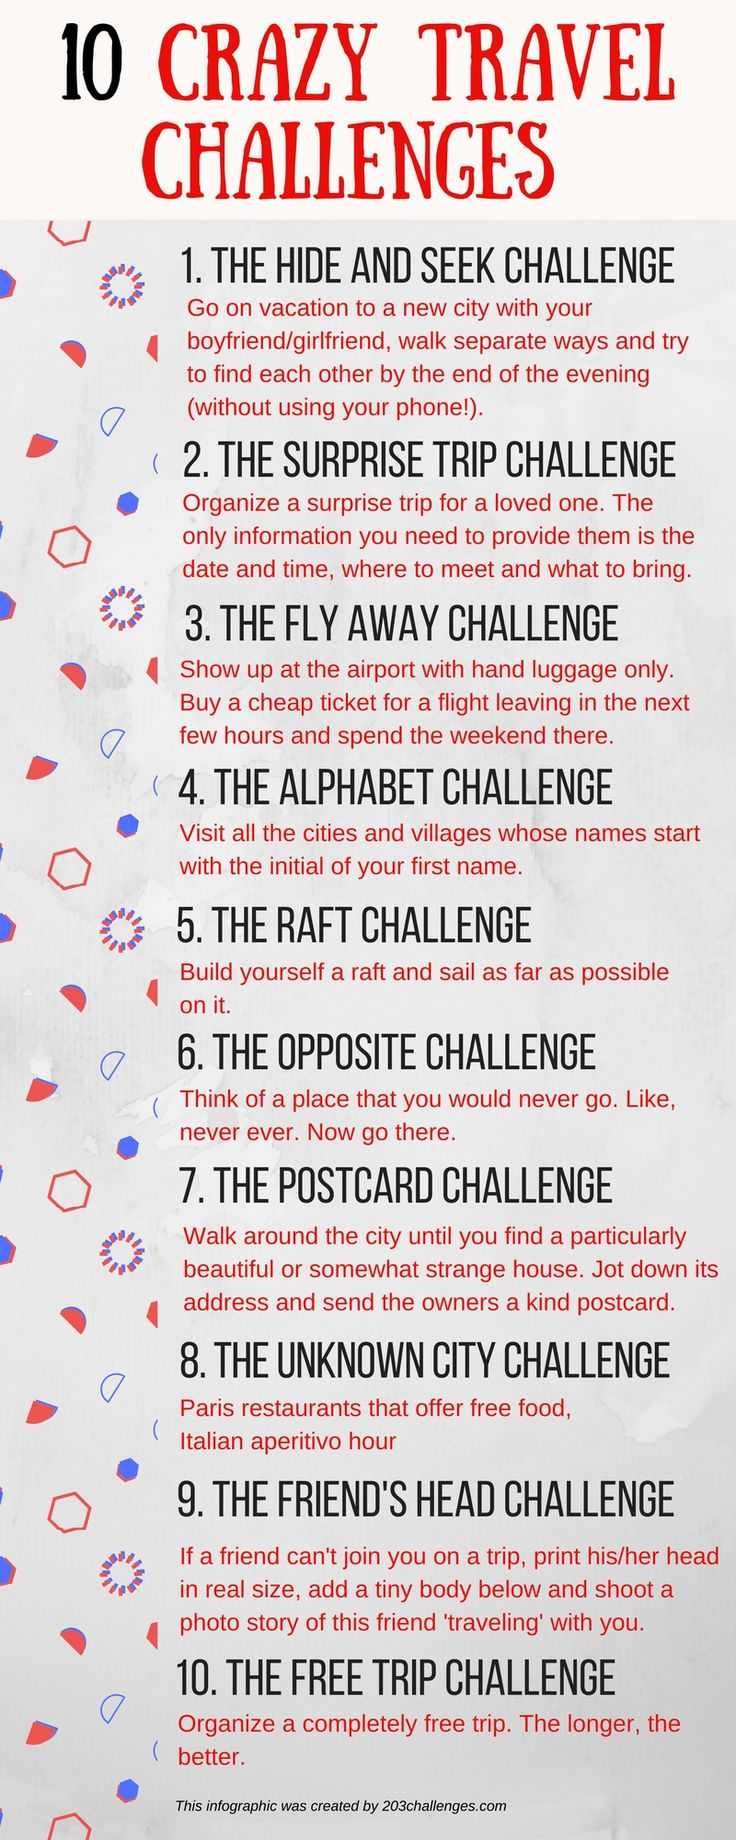 A 10 crazy travel challenges list for the wild-spirited | 203Challenges